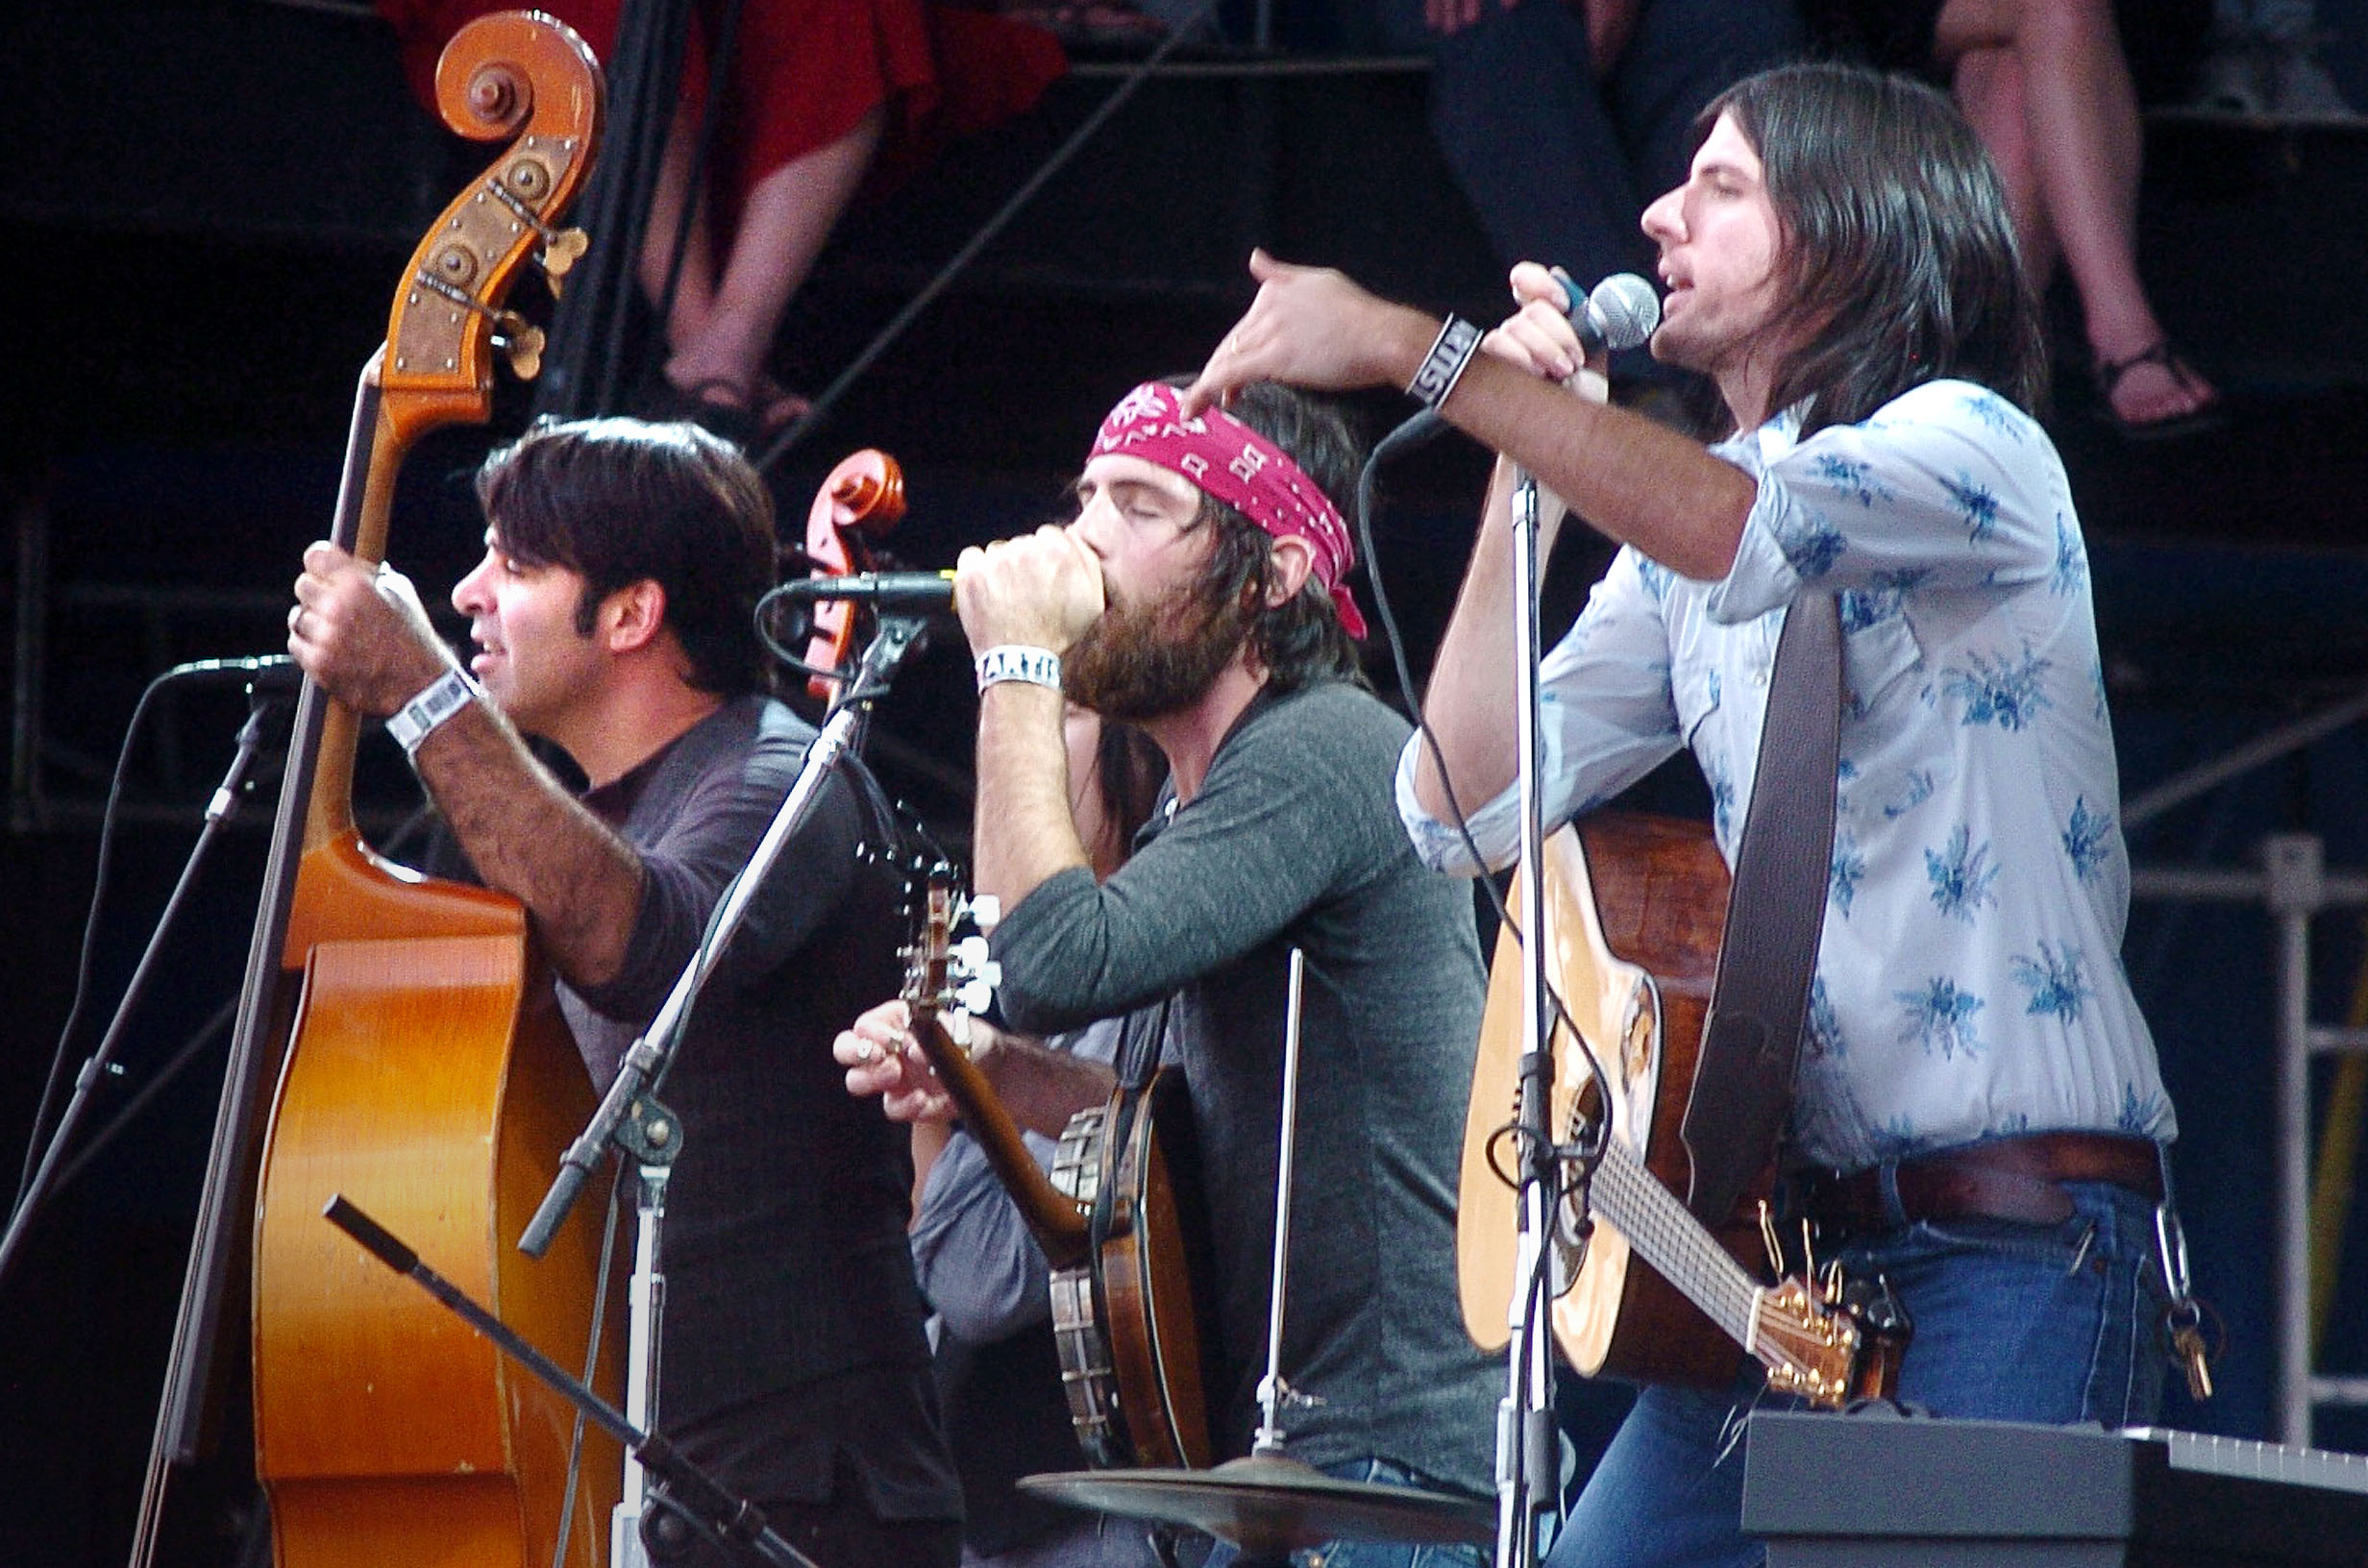 Review: The Avett Brothers - Music - The Austin Chronicle